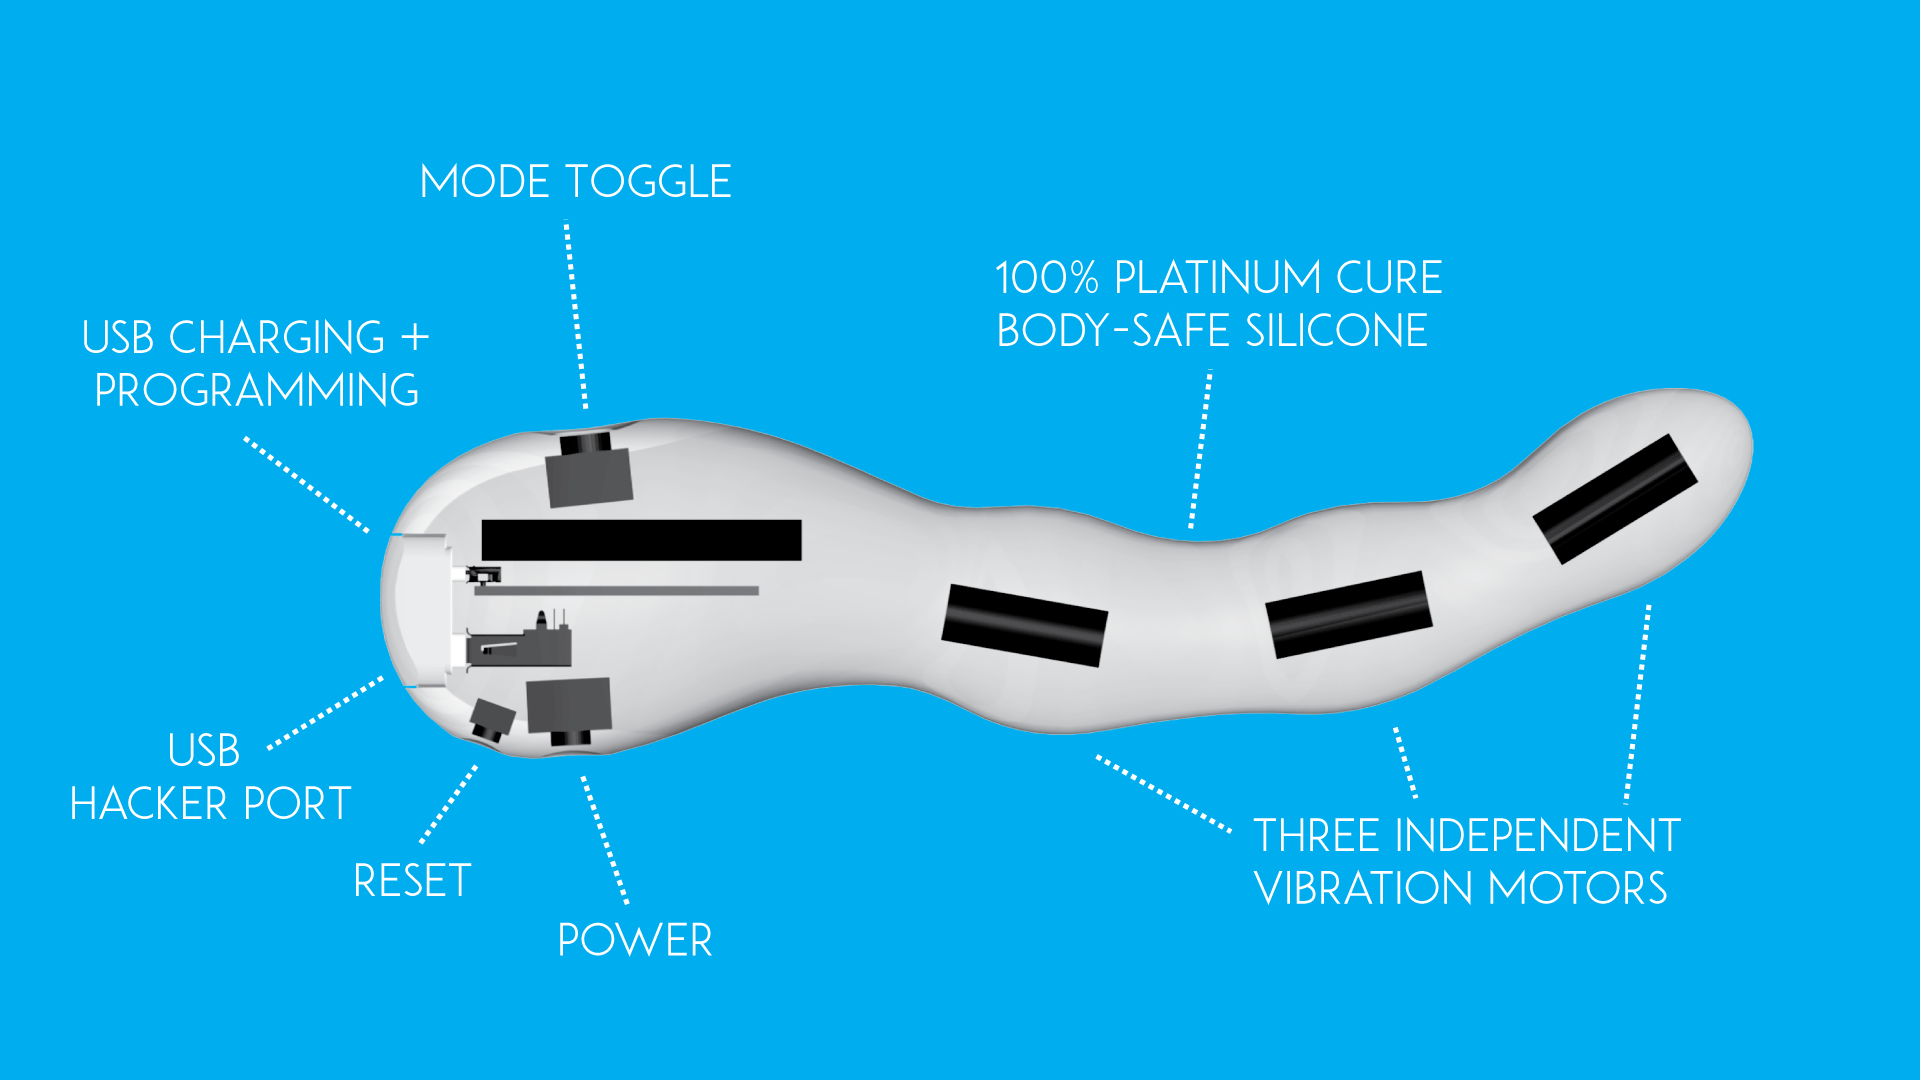 Crowdfunded Open-Source Dildo? Crowdfunded Open-Source Dildo